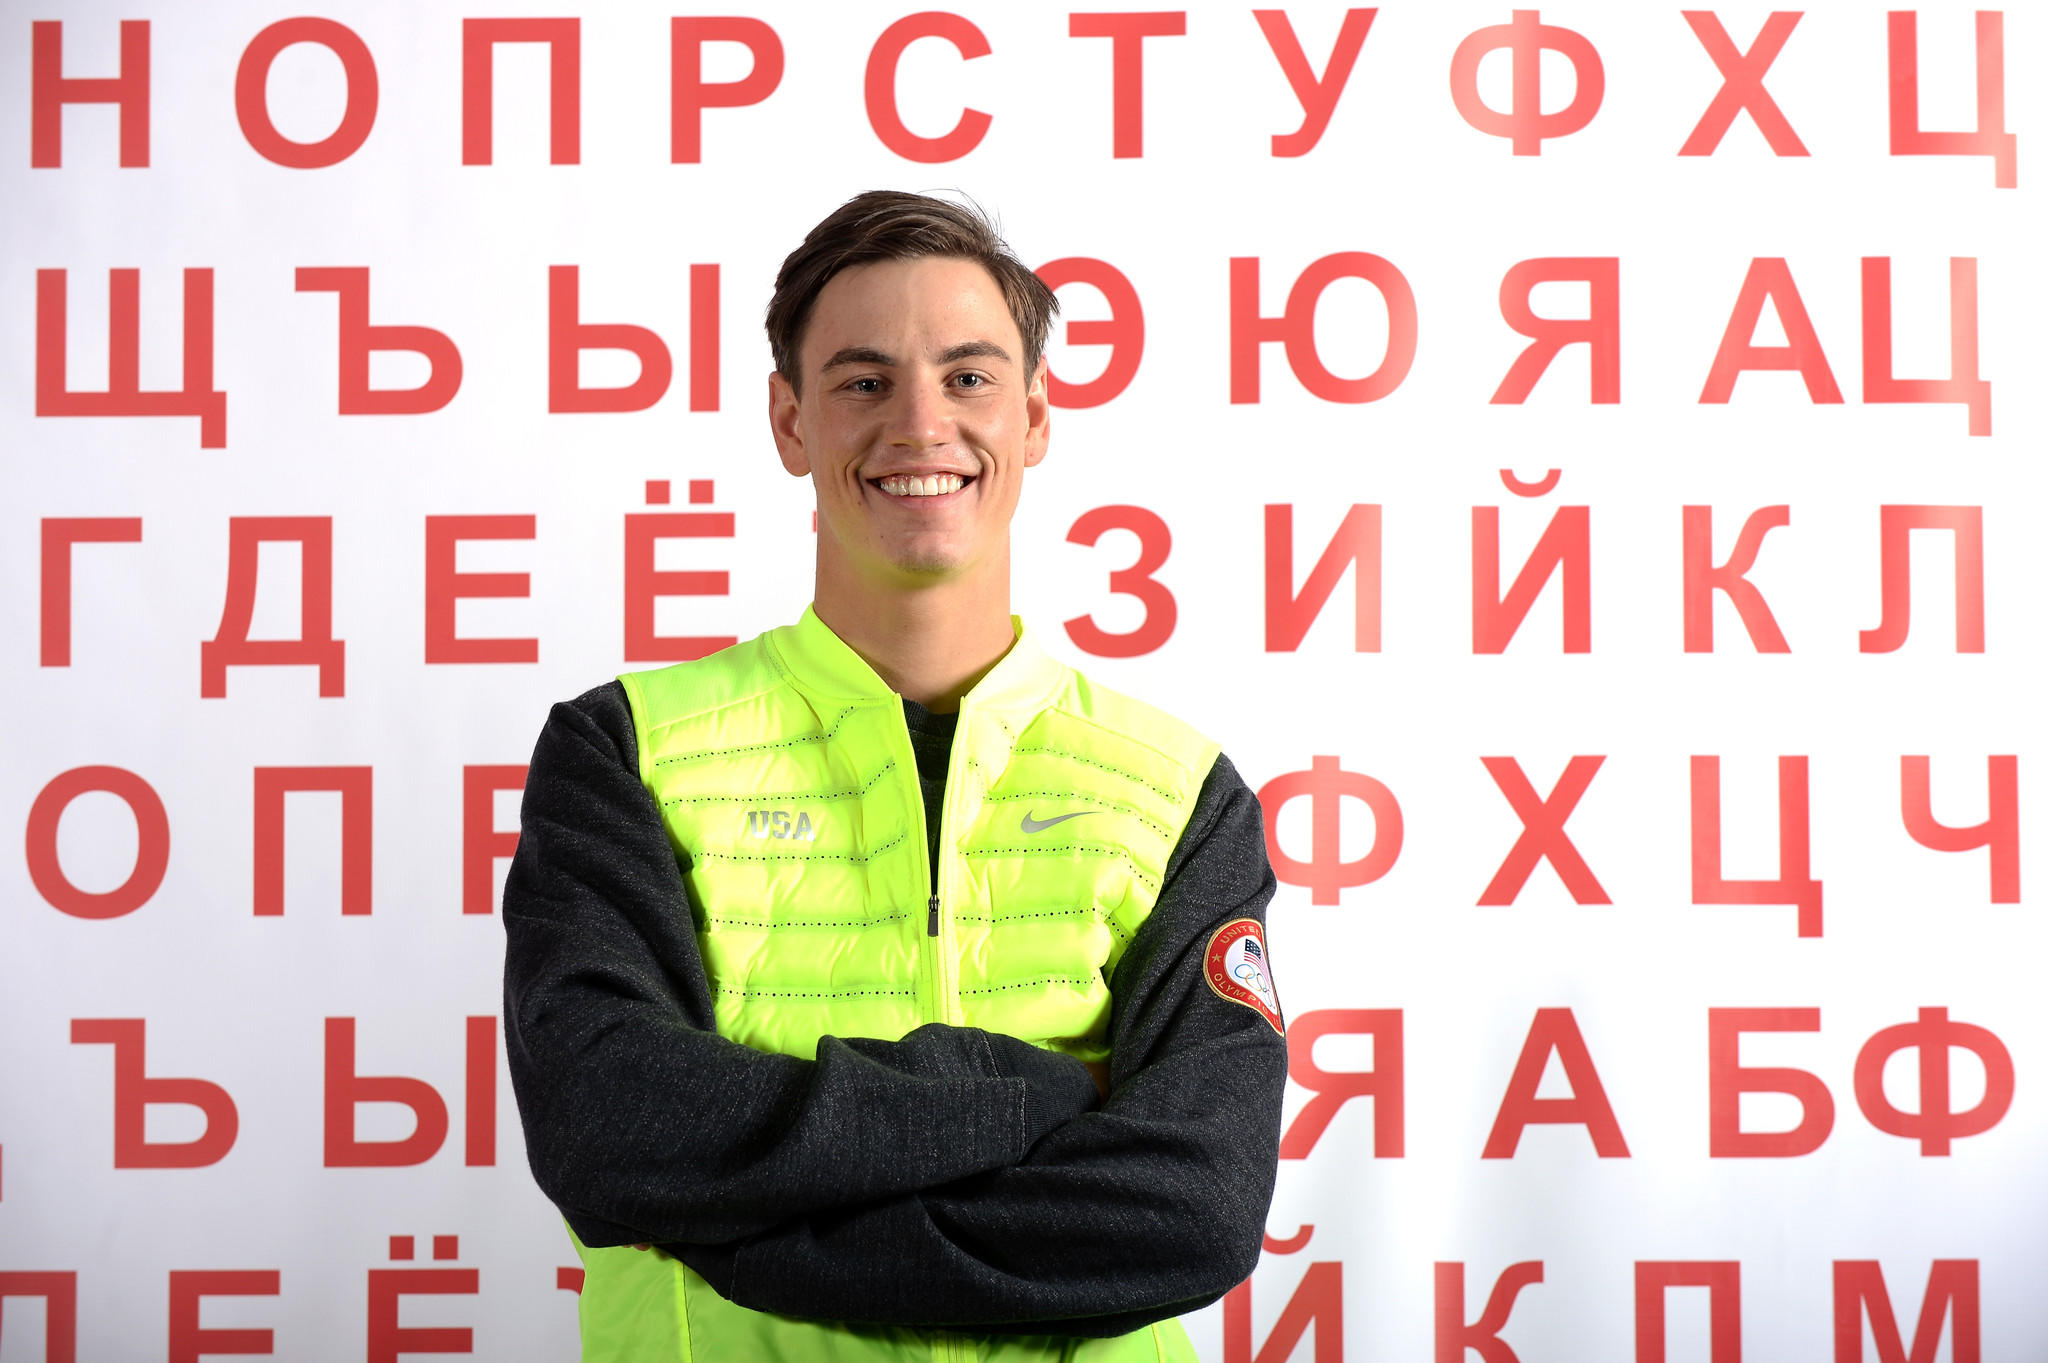 Freestyle skier Dylan Ferguson poses for a portrait during the USOC Media Summit ahead of the Sochi 2014 Winter Olympics on September 29, 2013 in Park City, Utah. (Photo by Harry How/Getty Images) ORG XMIT: 175457393